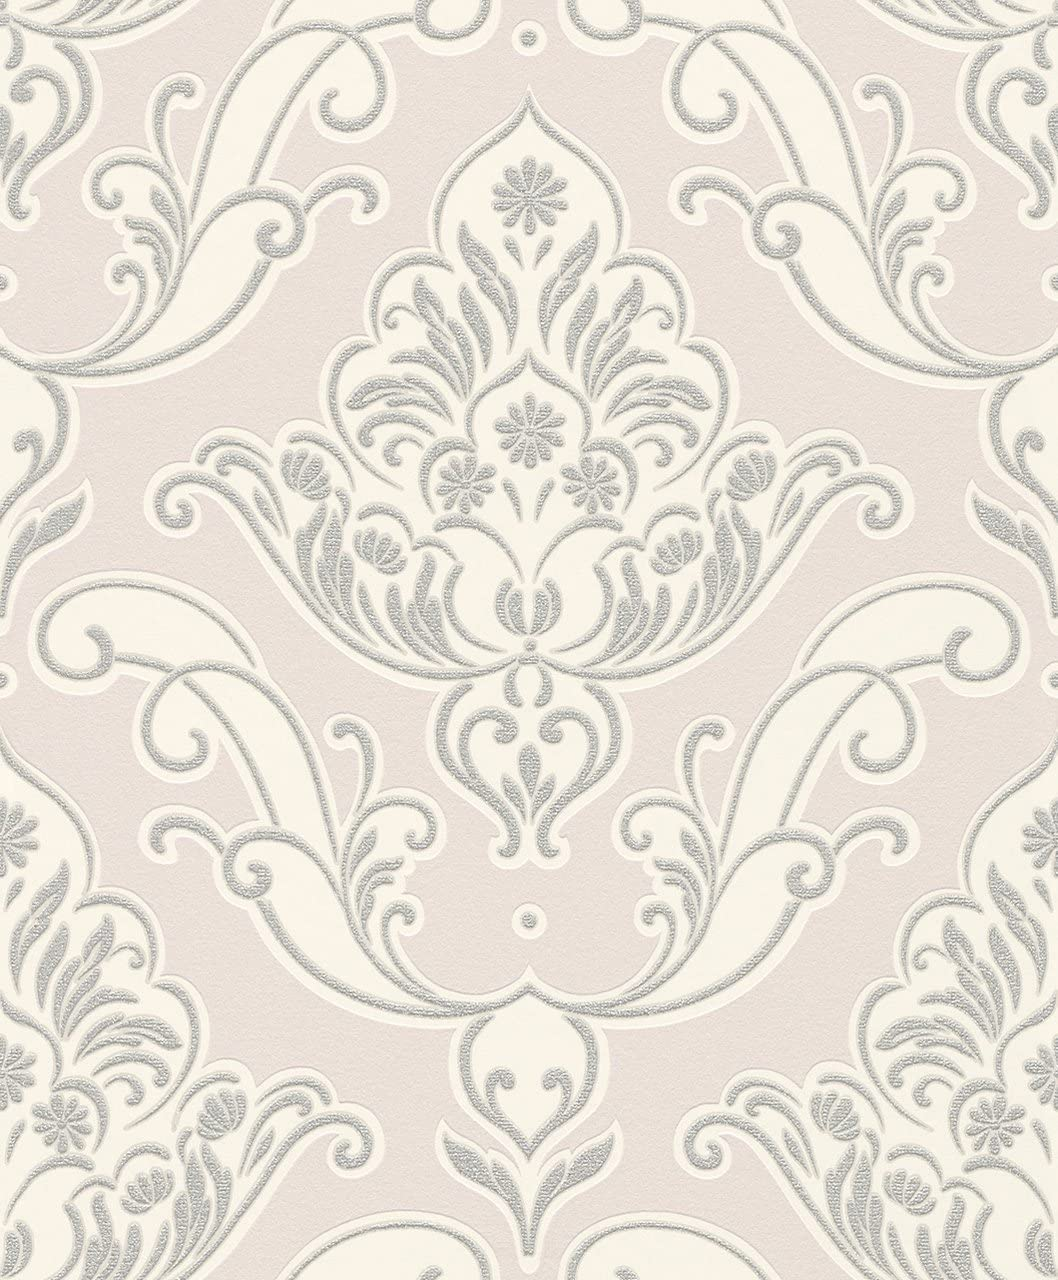 GATSBY GLITTER DAMASK WALLPAPER PINK SILVER RASCH 319637 FEATURE WALL NEW